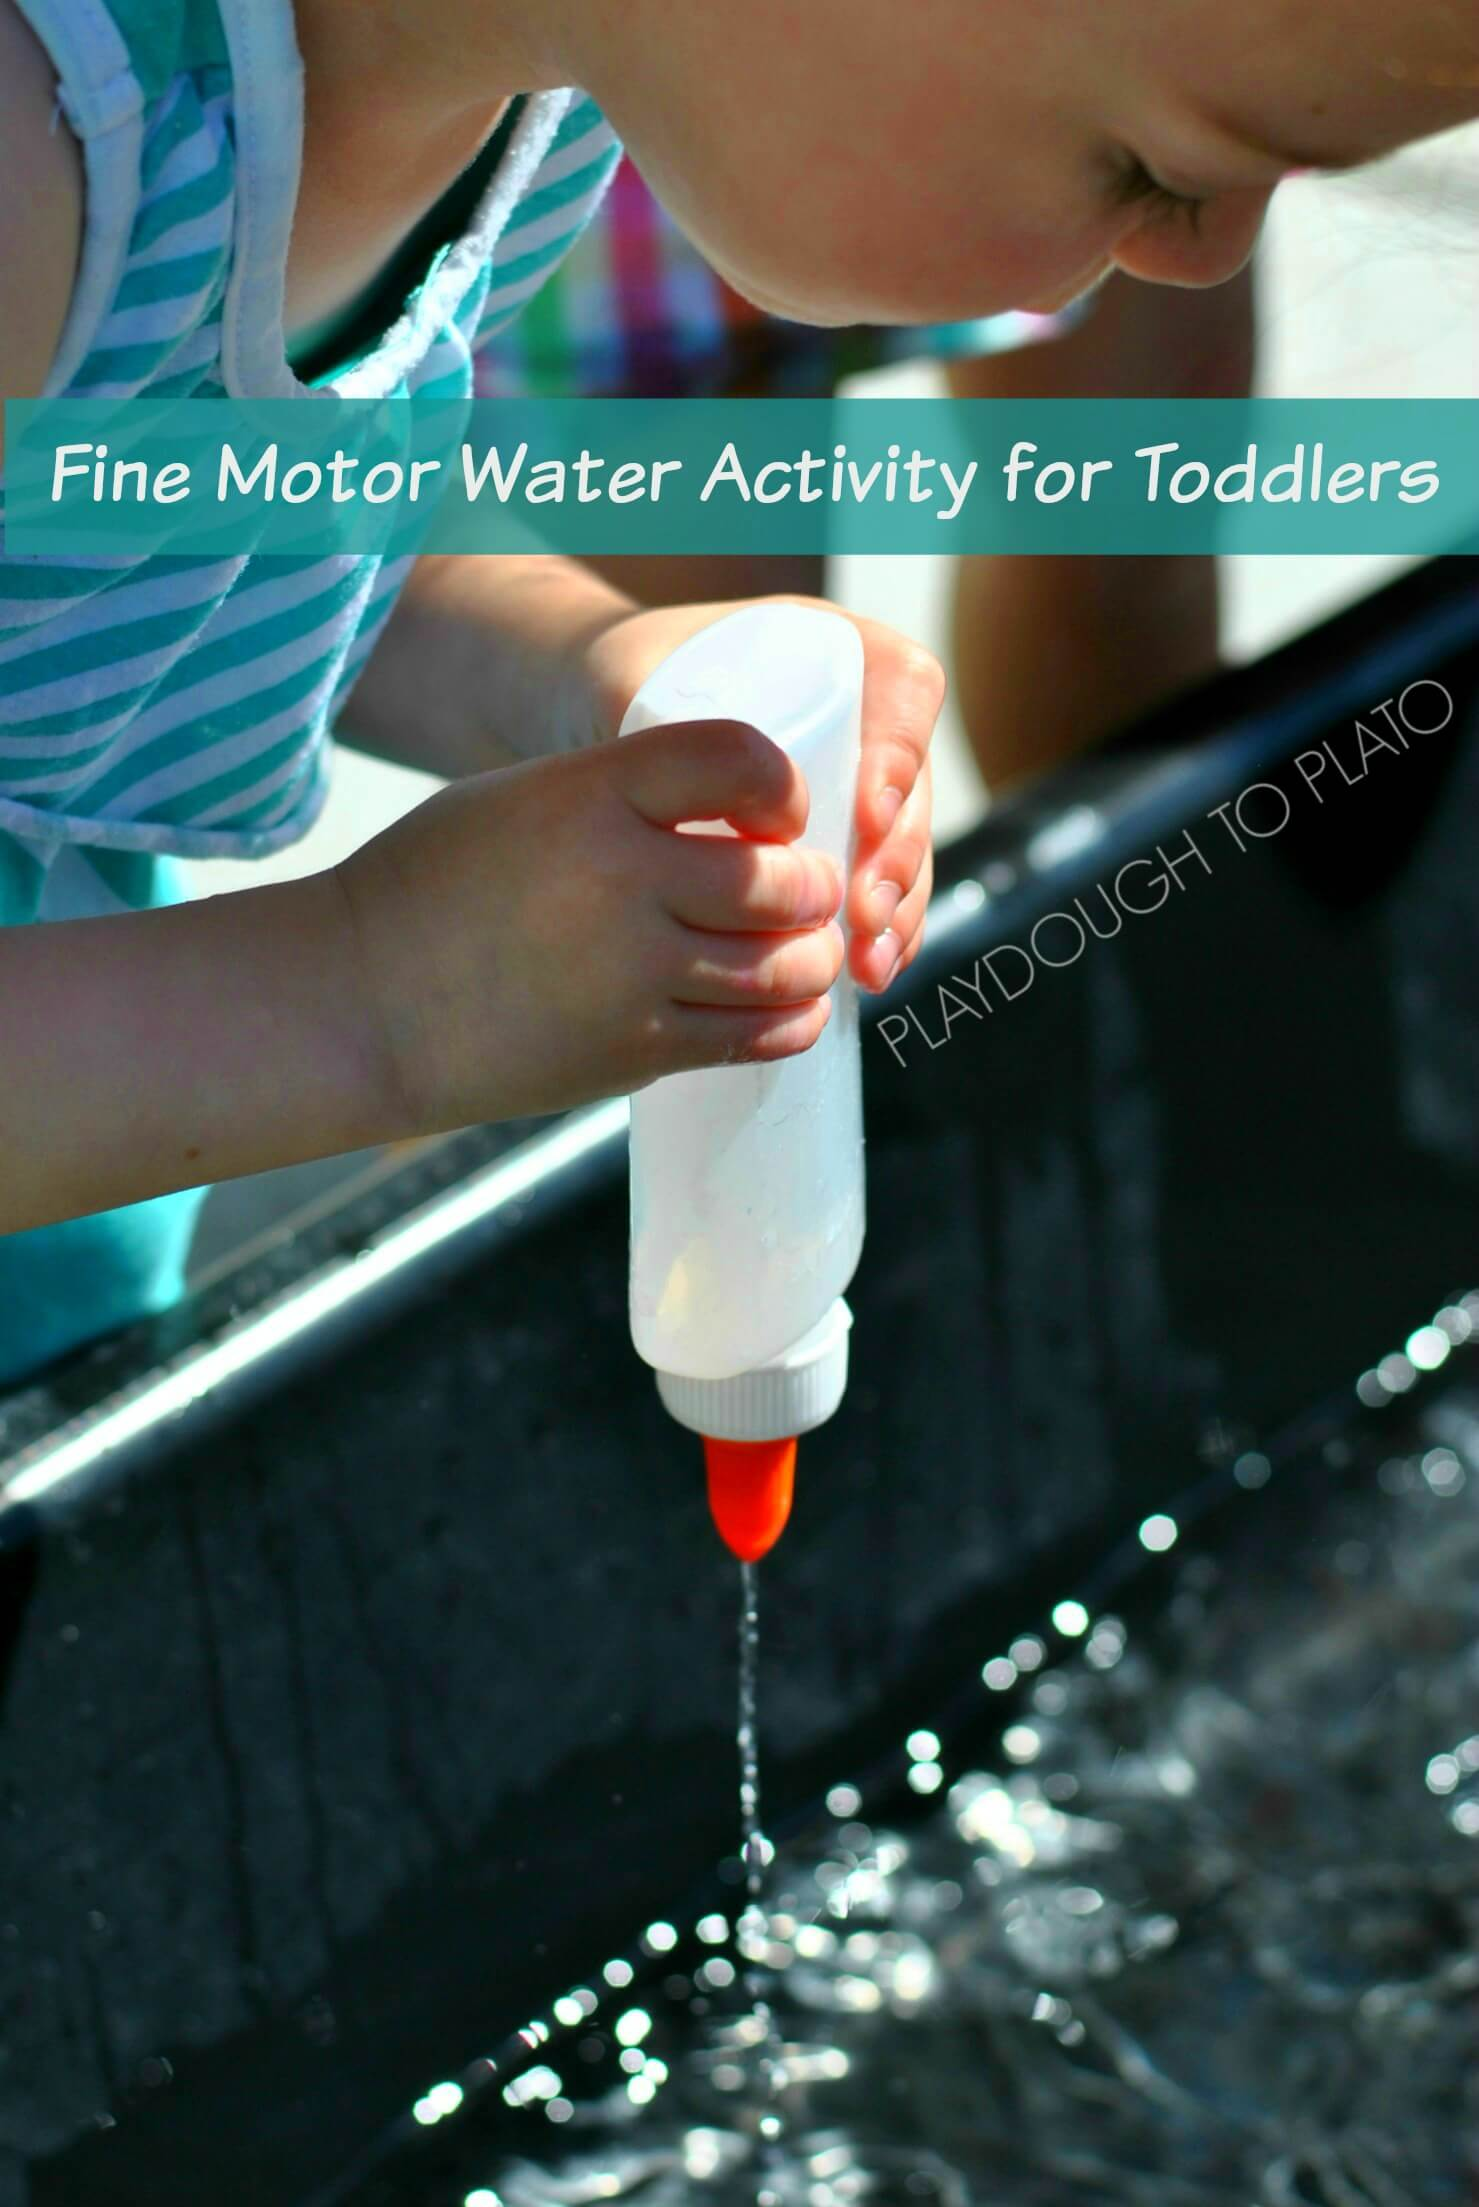 Fine motor water activity for toddlers for Small motor activities for infants